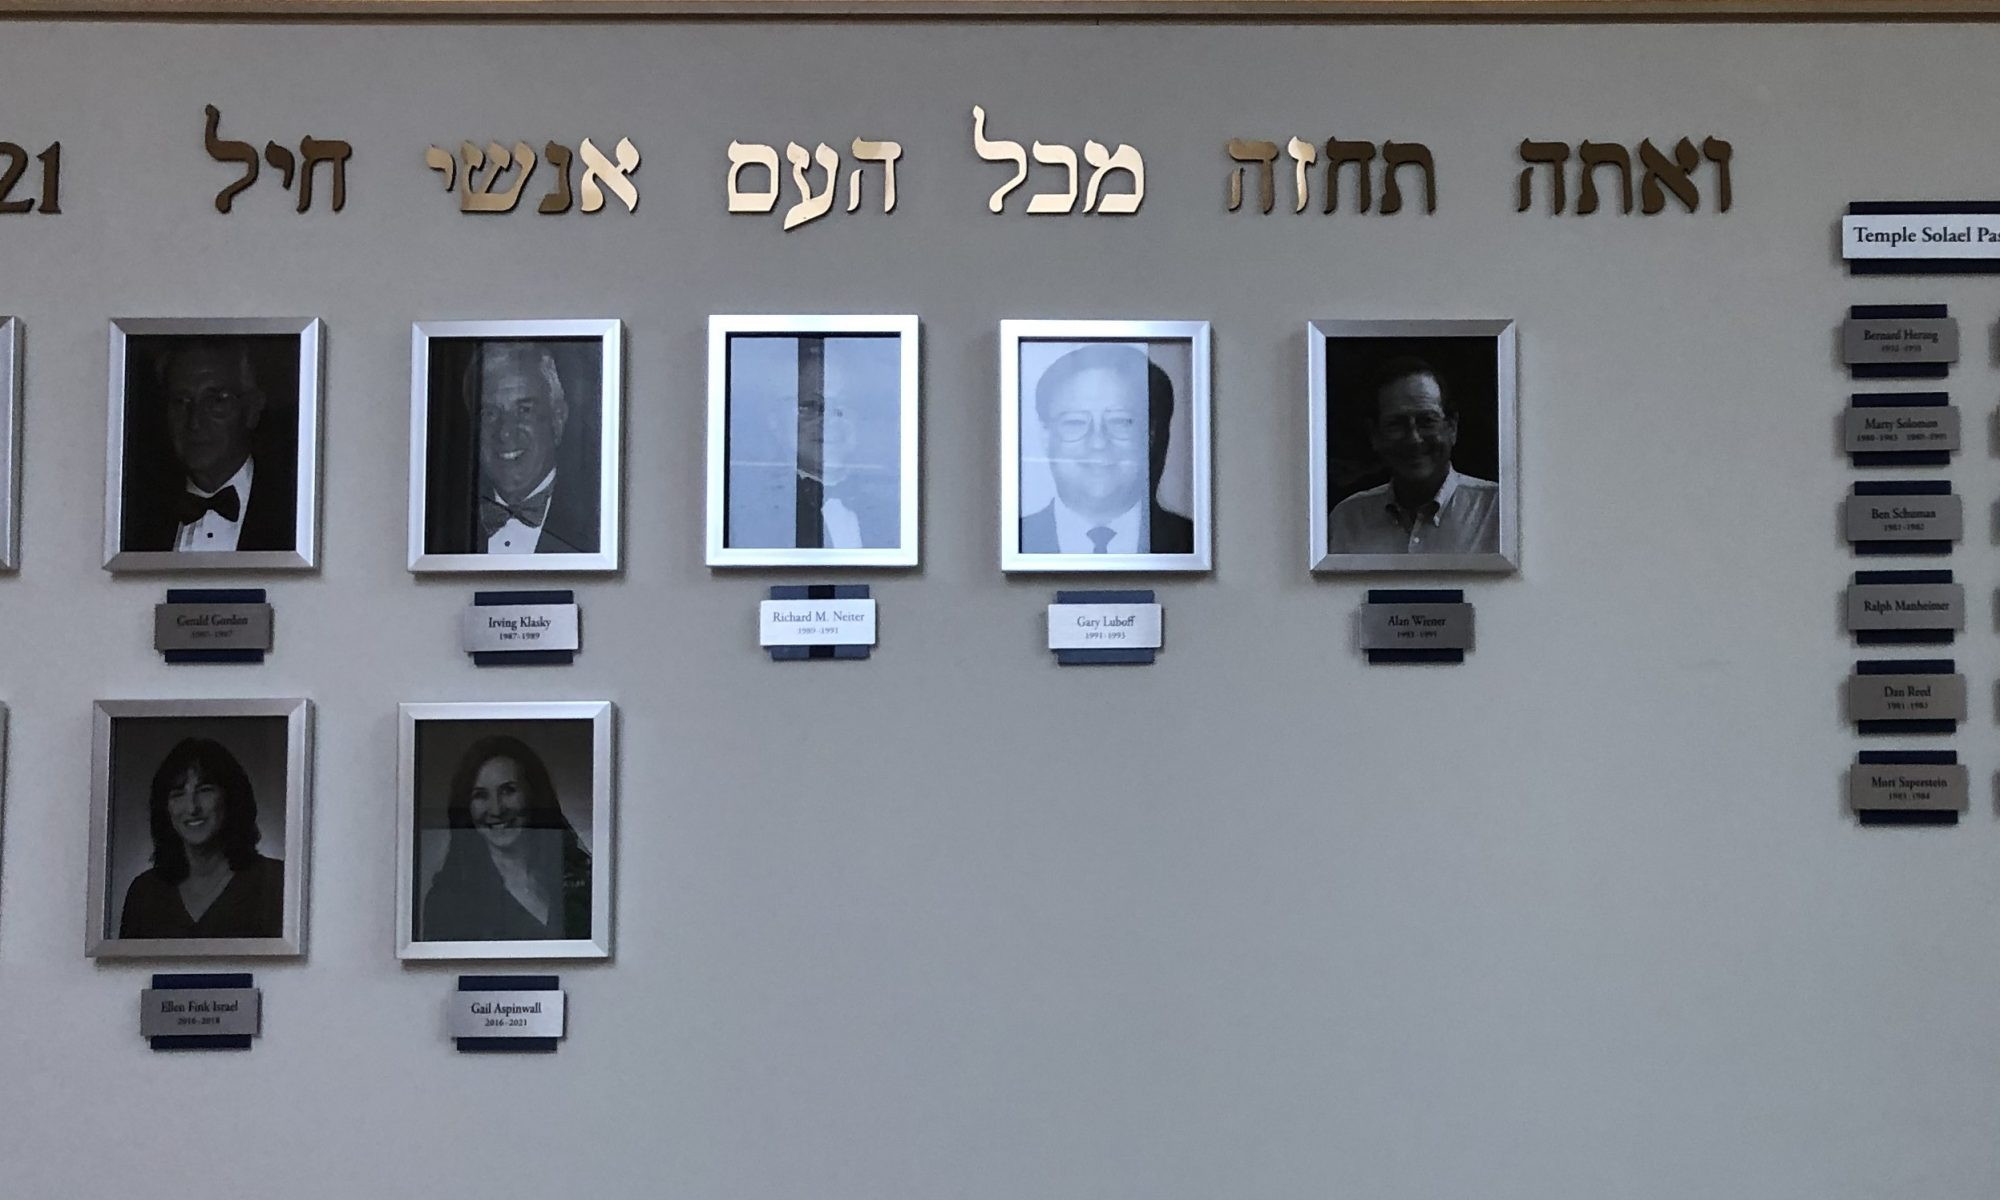 Temple Judea's President's Wall. The Tarzana synagogue honors those who served in the distinct position with this commemoration wall.